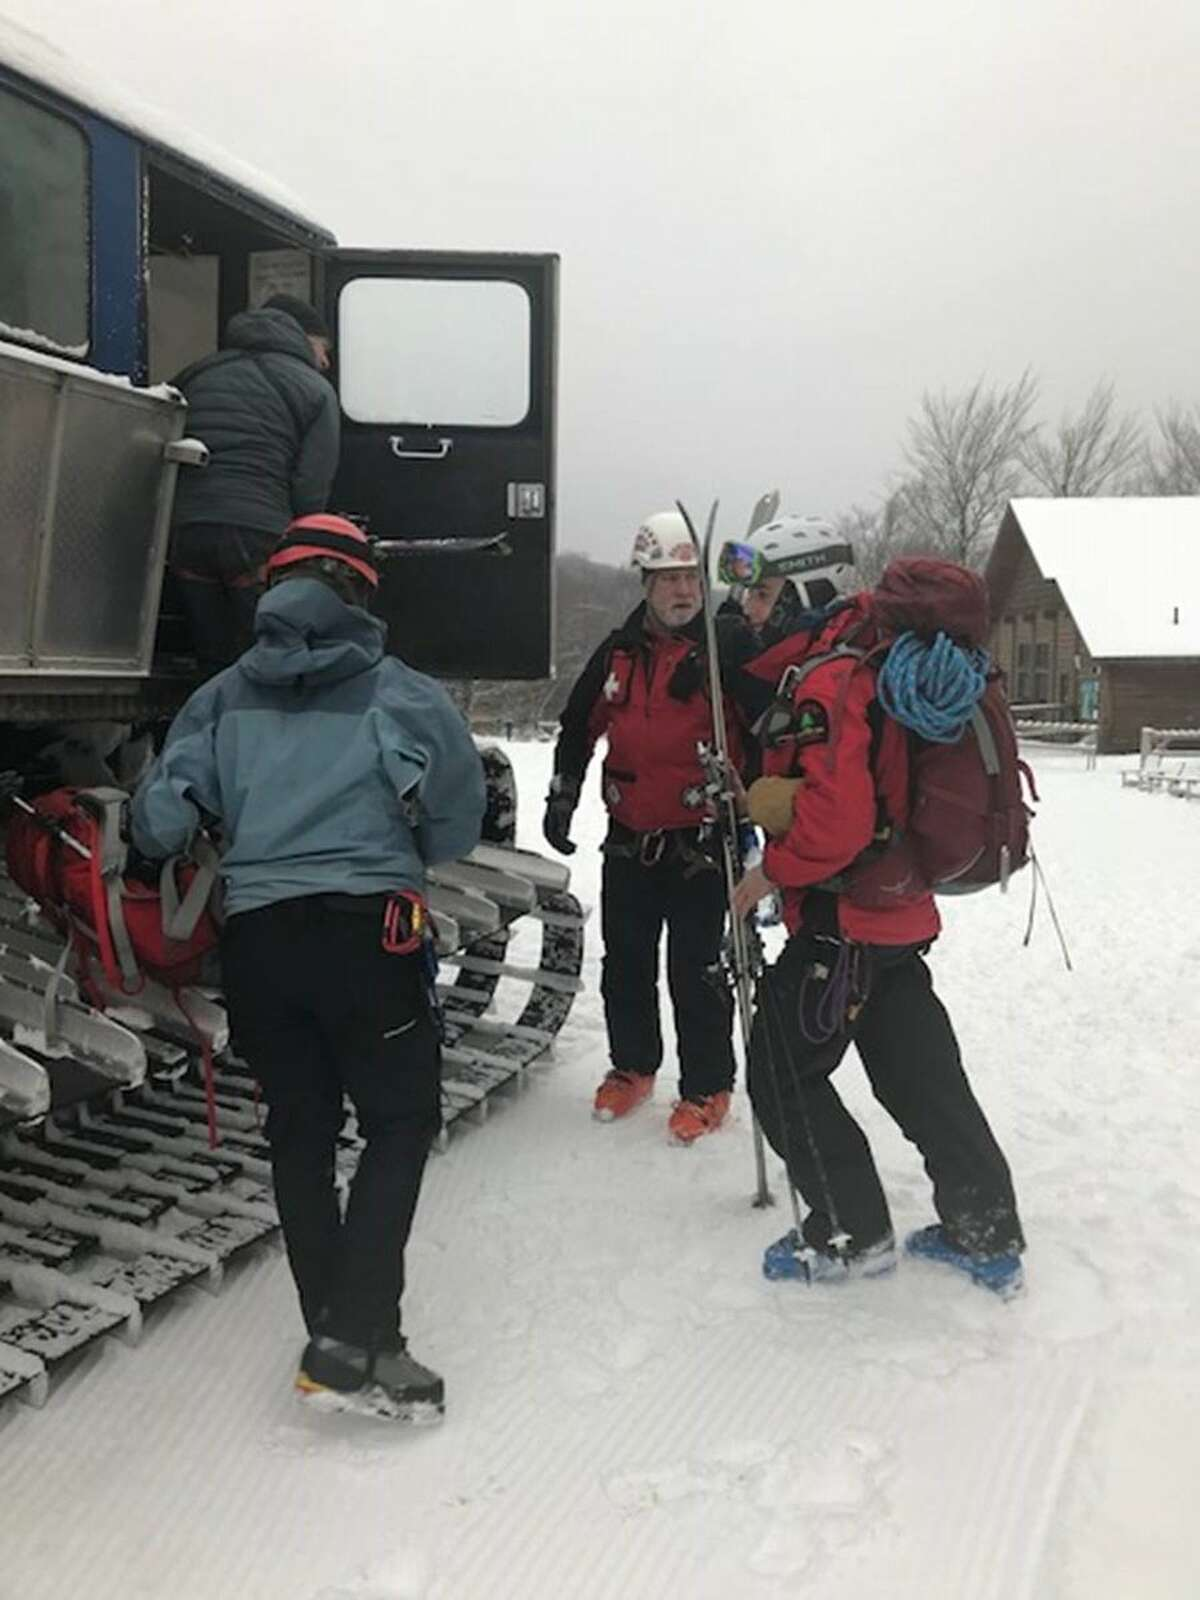 Search party members set out on Whiteface Mountain to look for missing skier, Constantinos